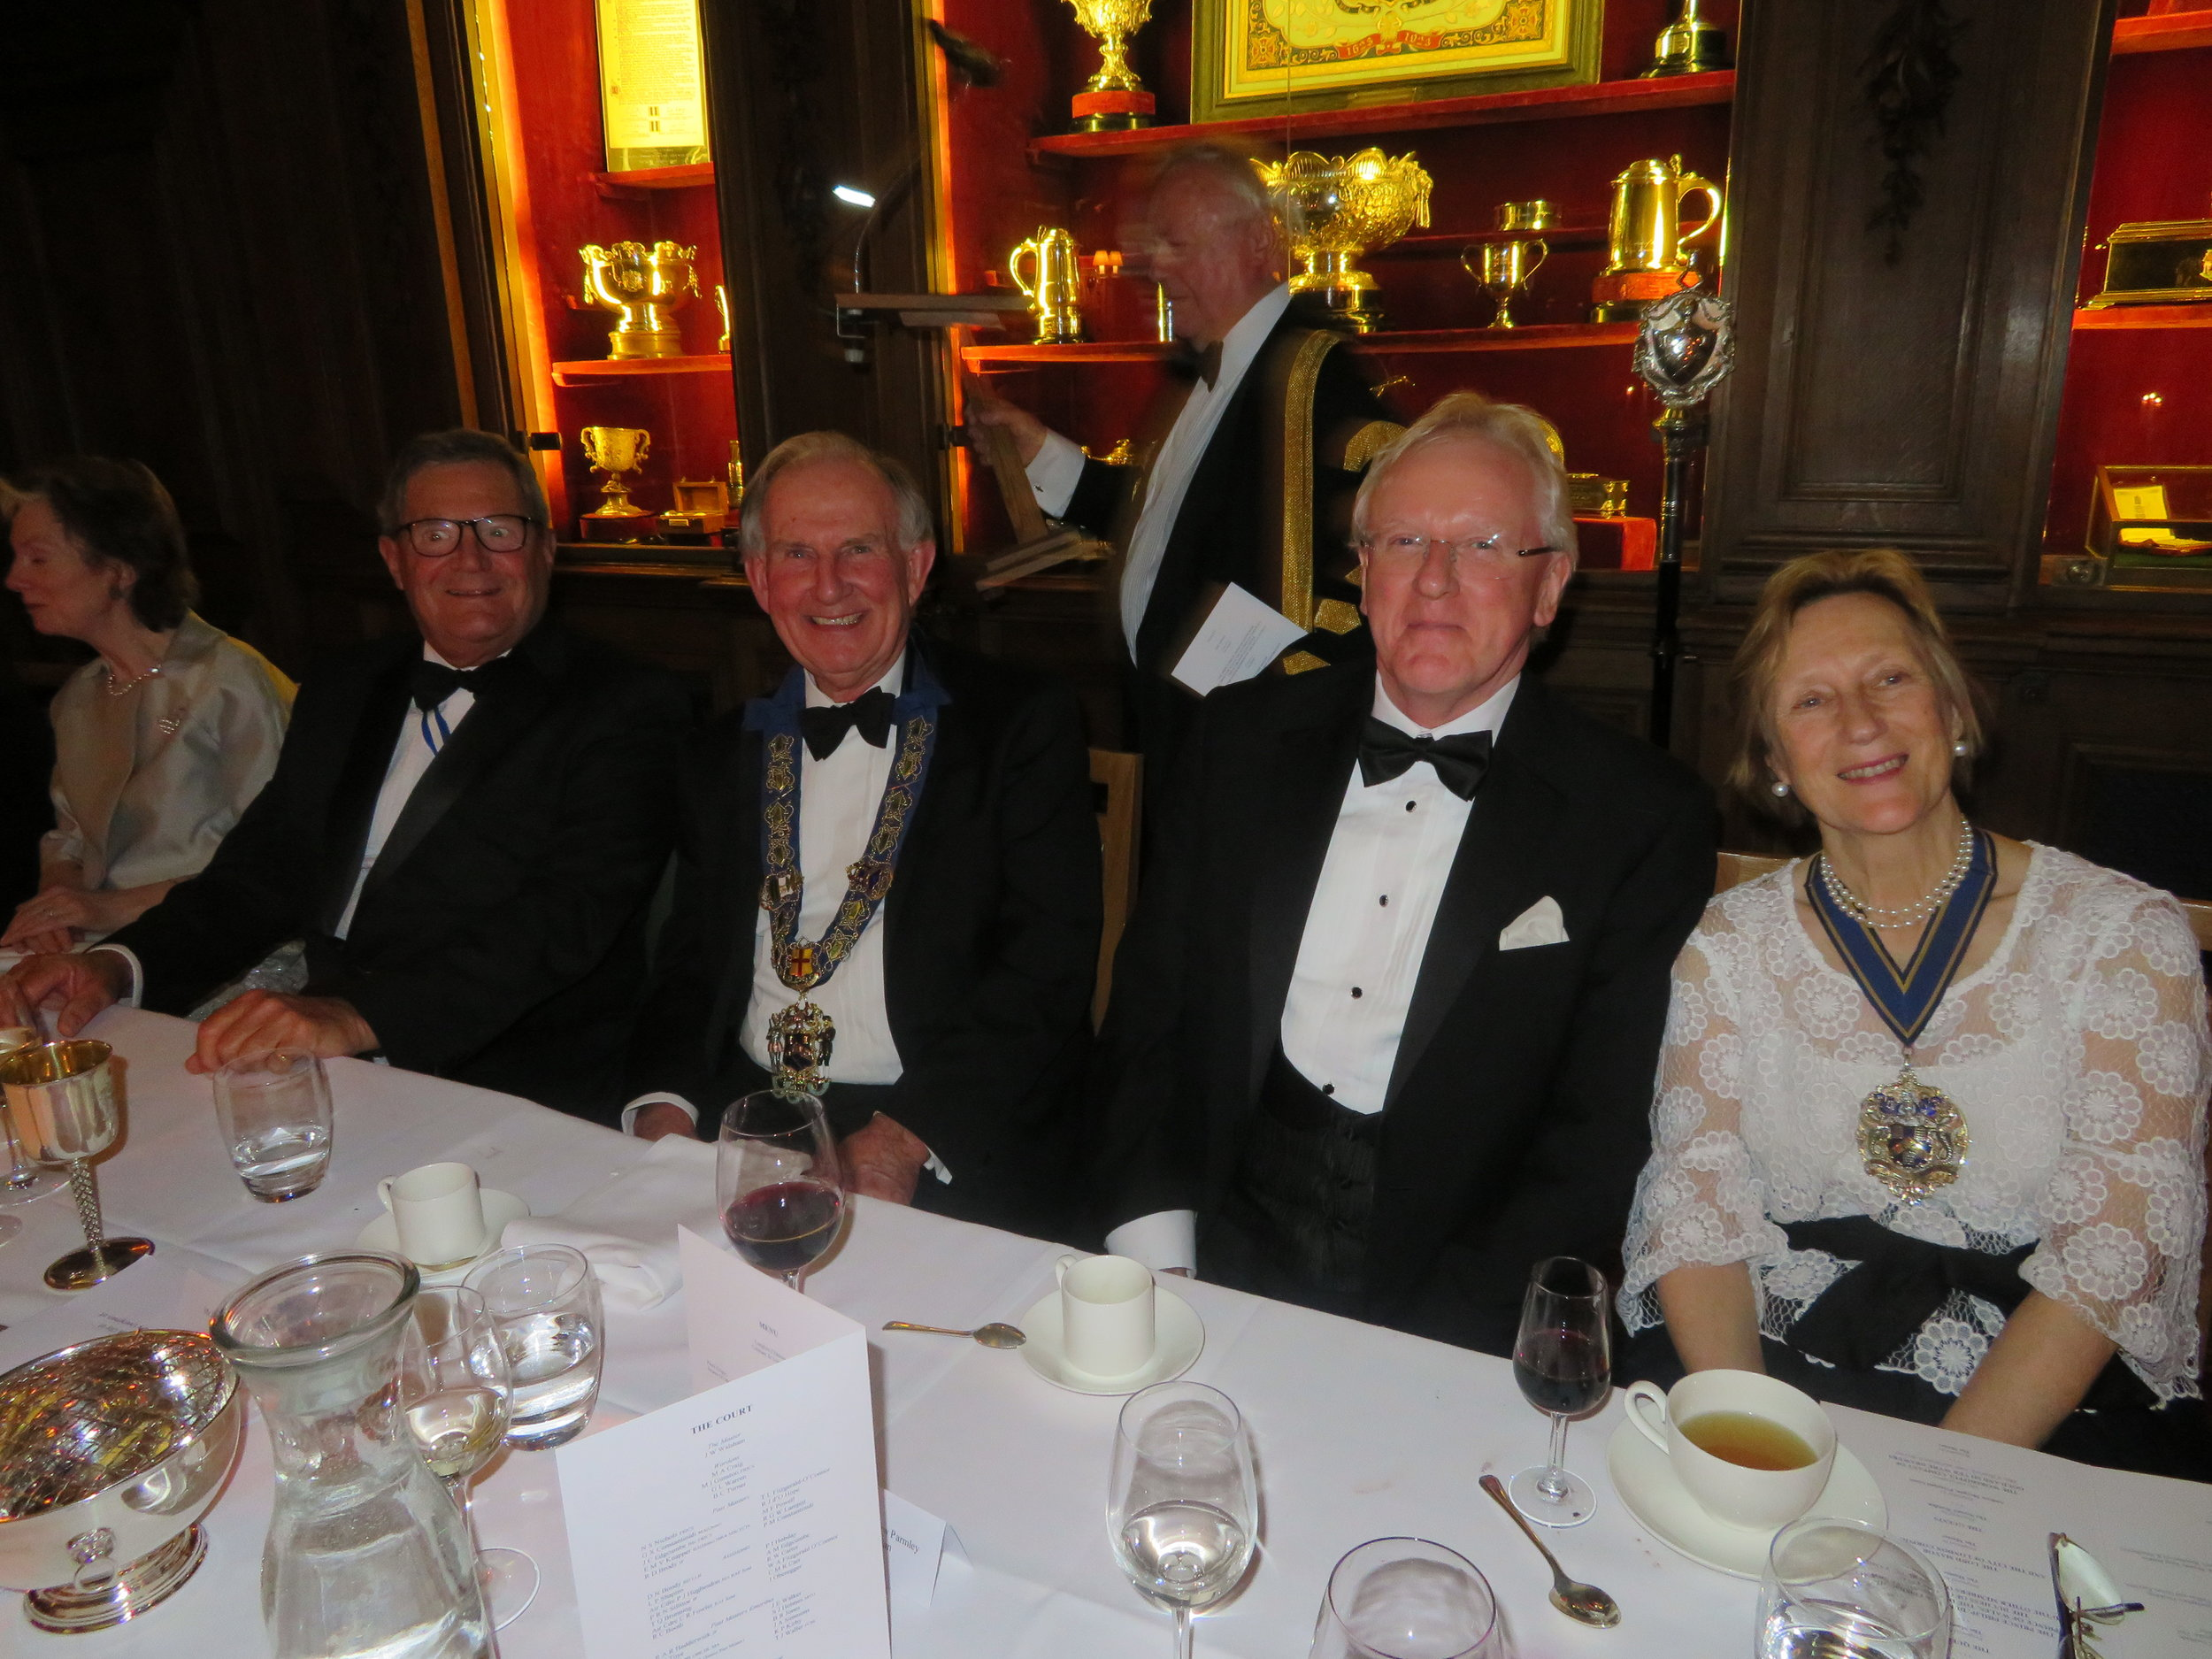 Mr Andrew Morgan, The Master, Ald. Sir Andrew Parmley, Mrs Ann Buxton Master Pewterer